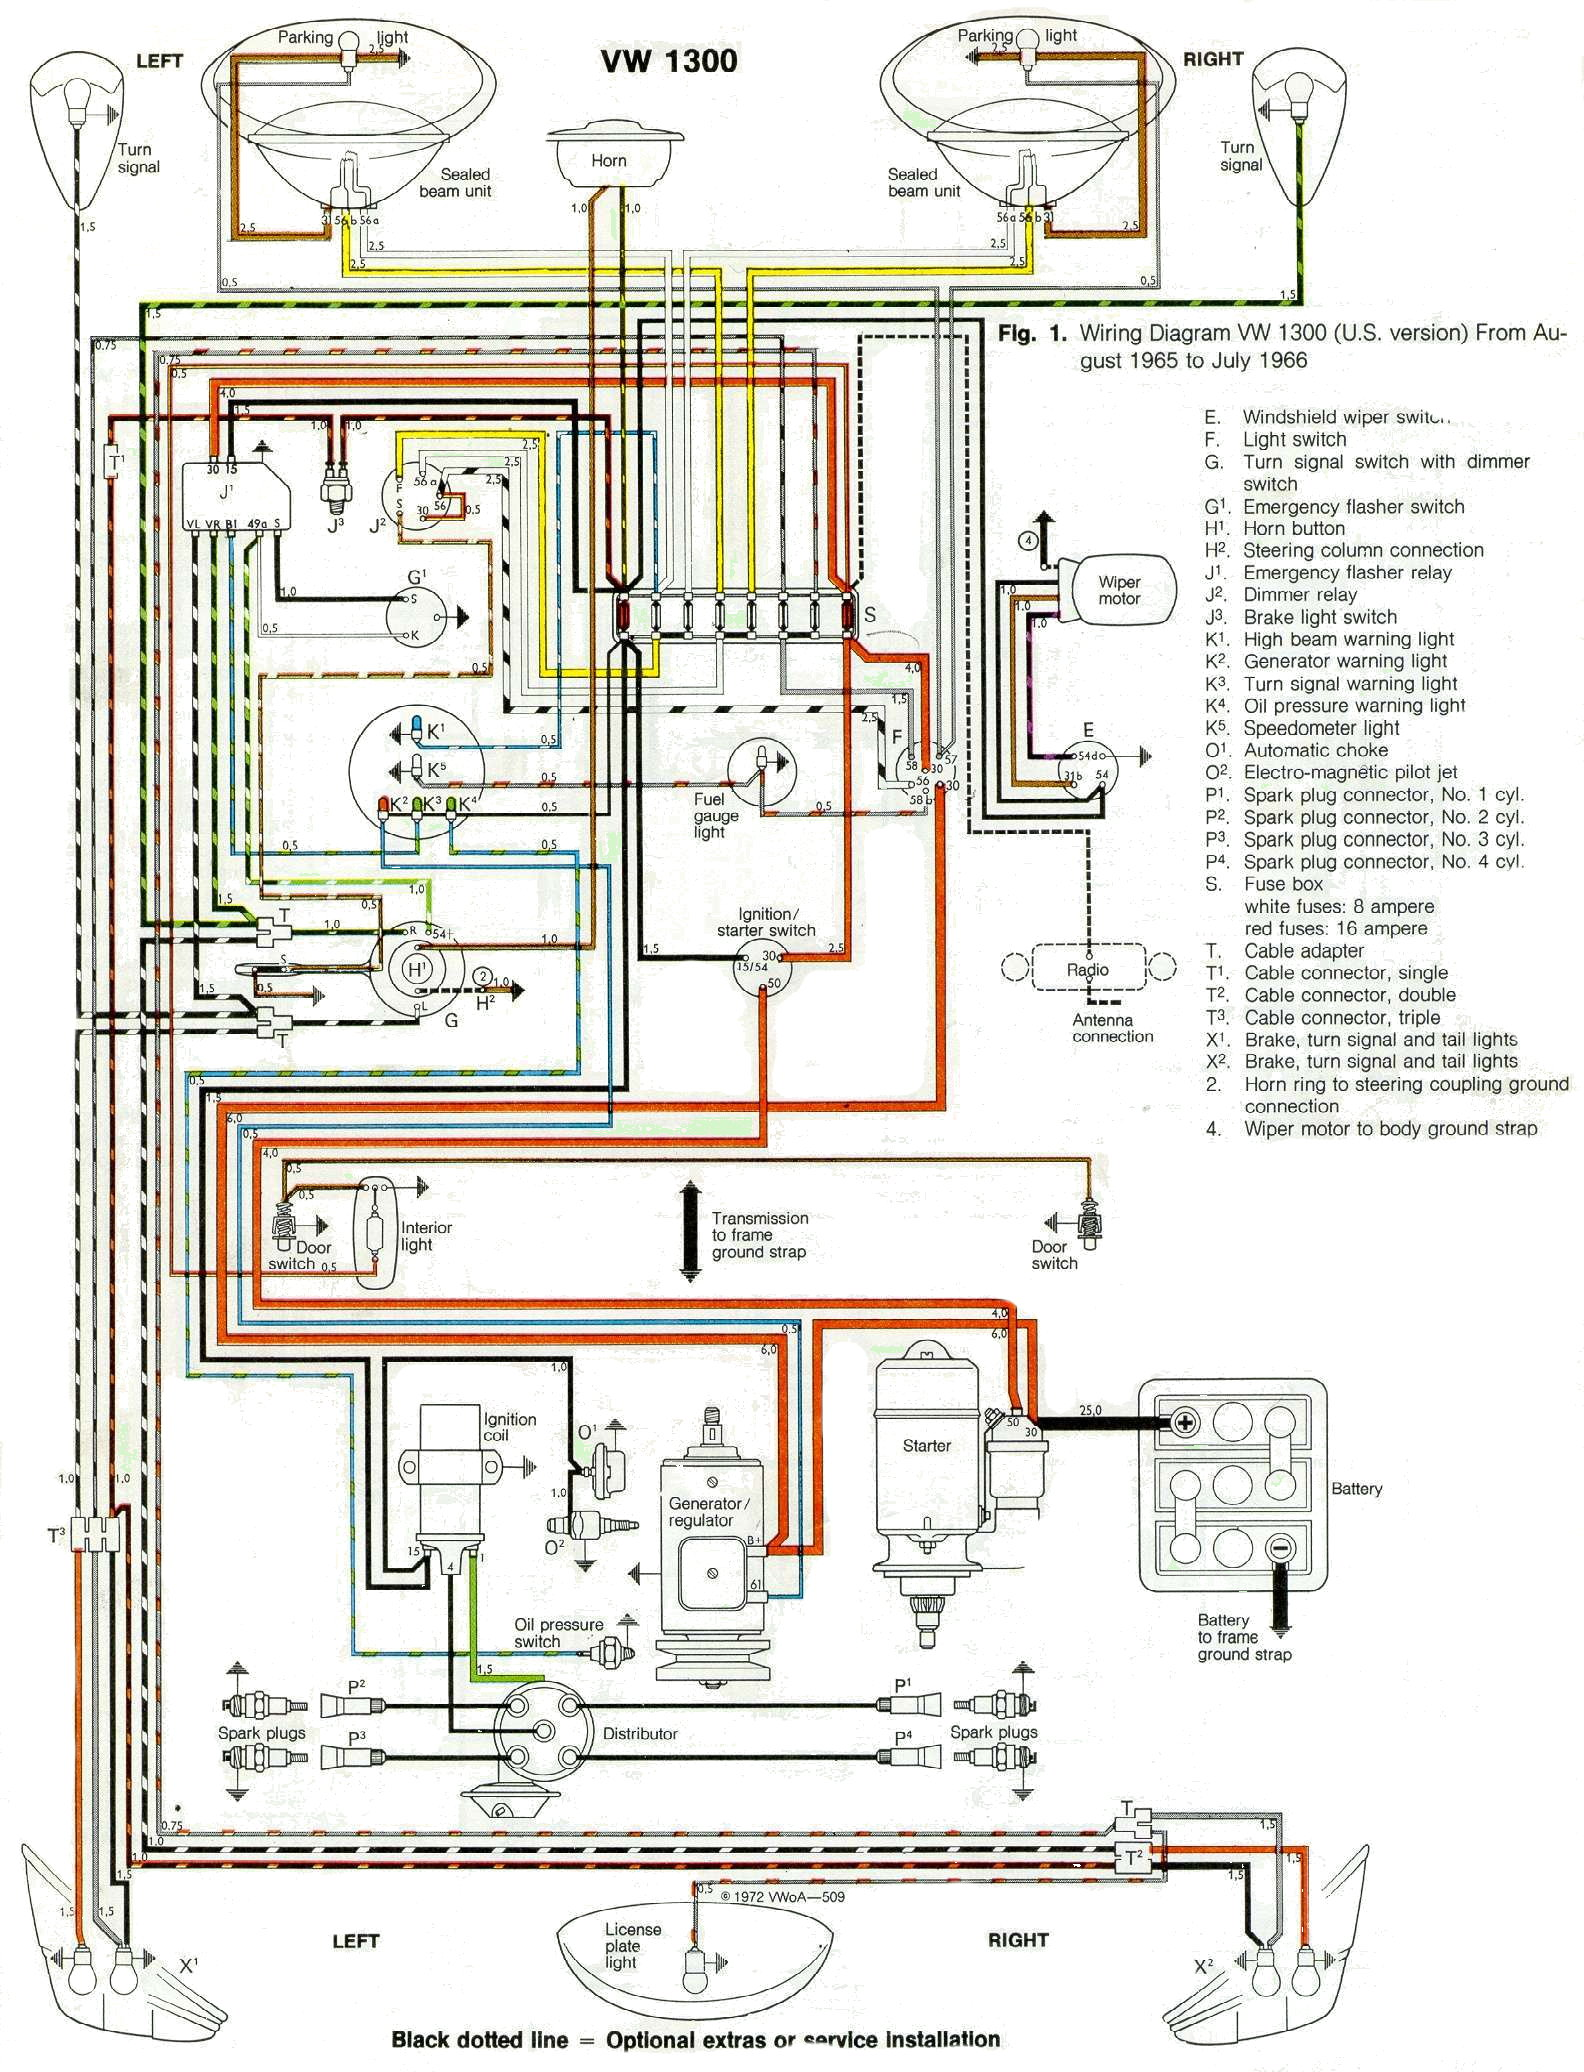 1966 wiring diagram 64 volkswagen bug wiring-diagram 1967 vw beetle wiring diagram #7